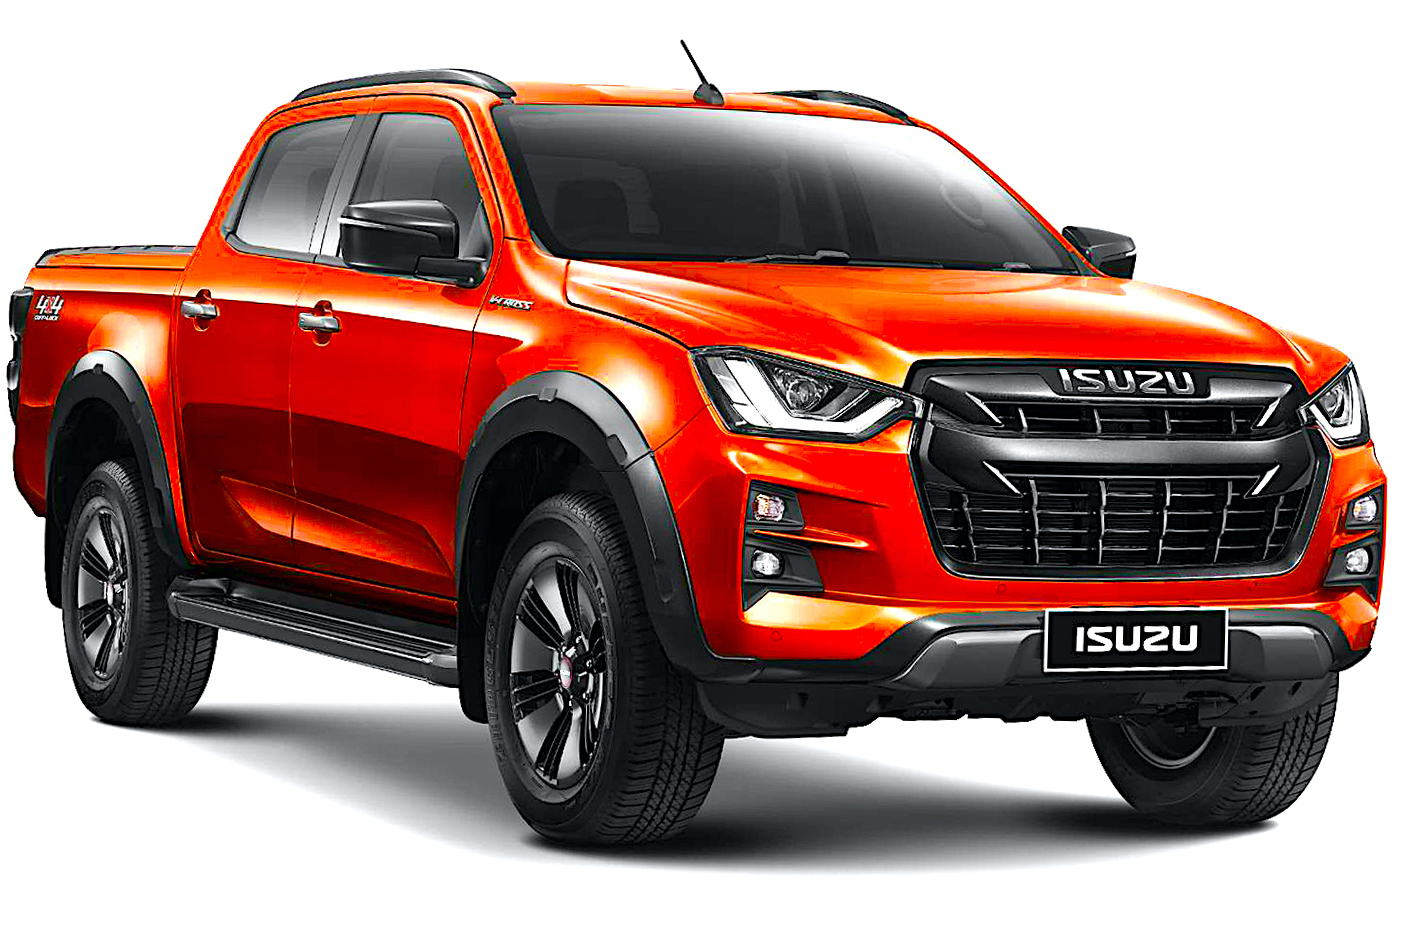 WILL ISUZU LEAD THE HYBRID BAKKIE CHARGE?